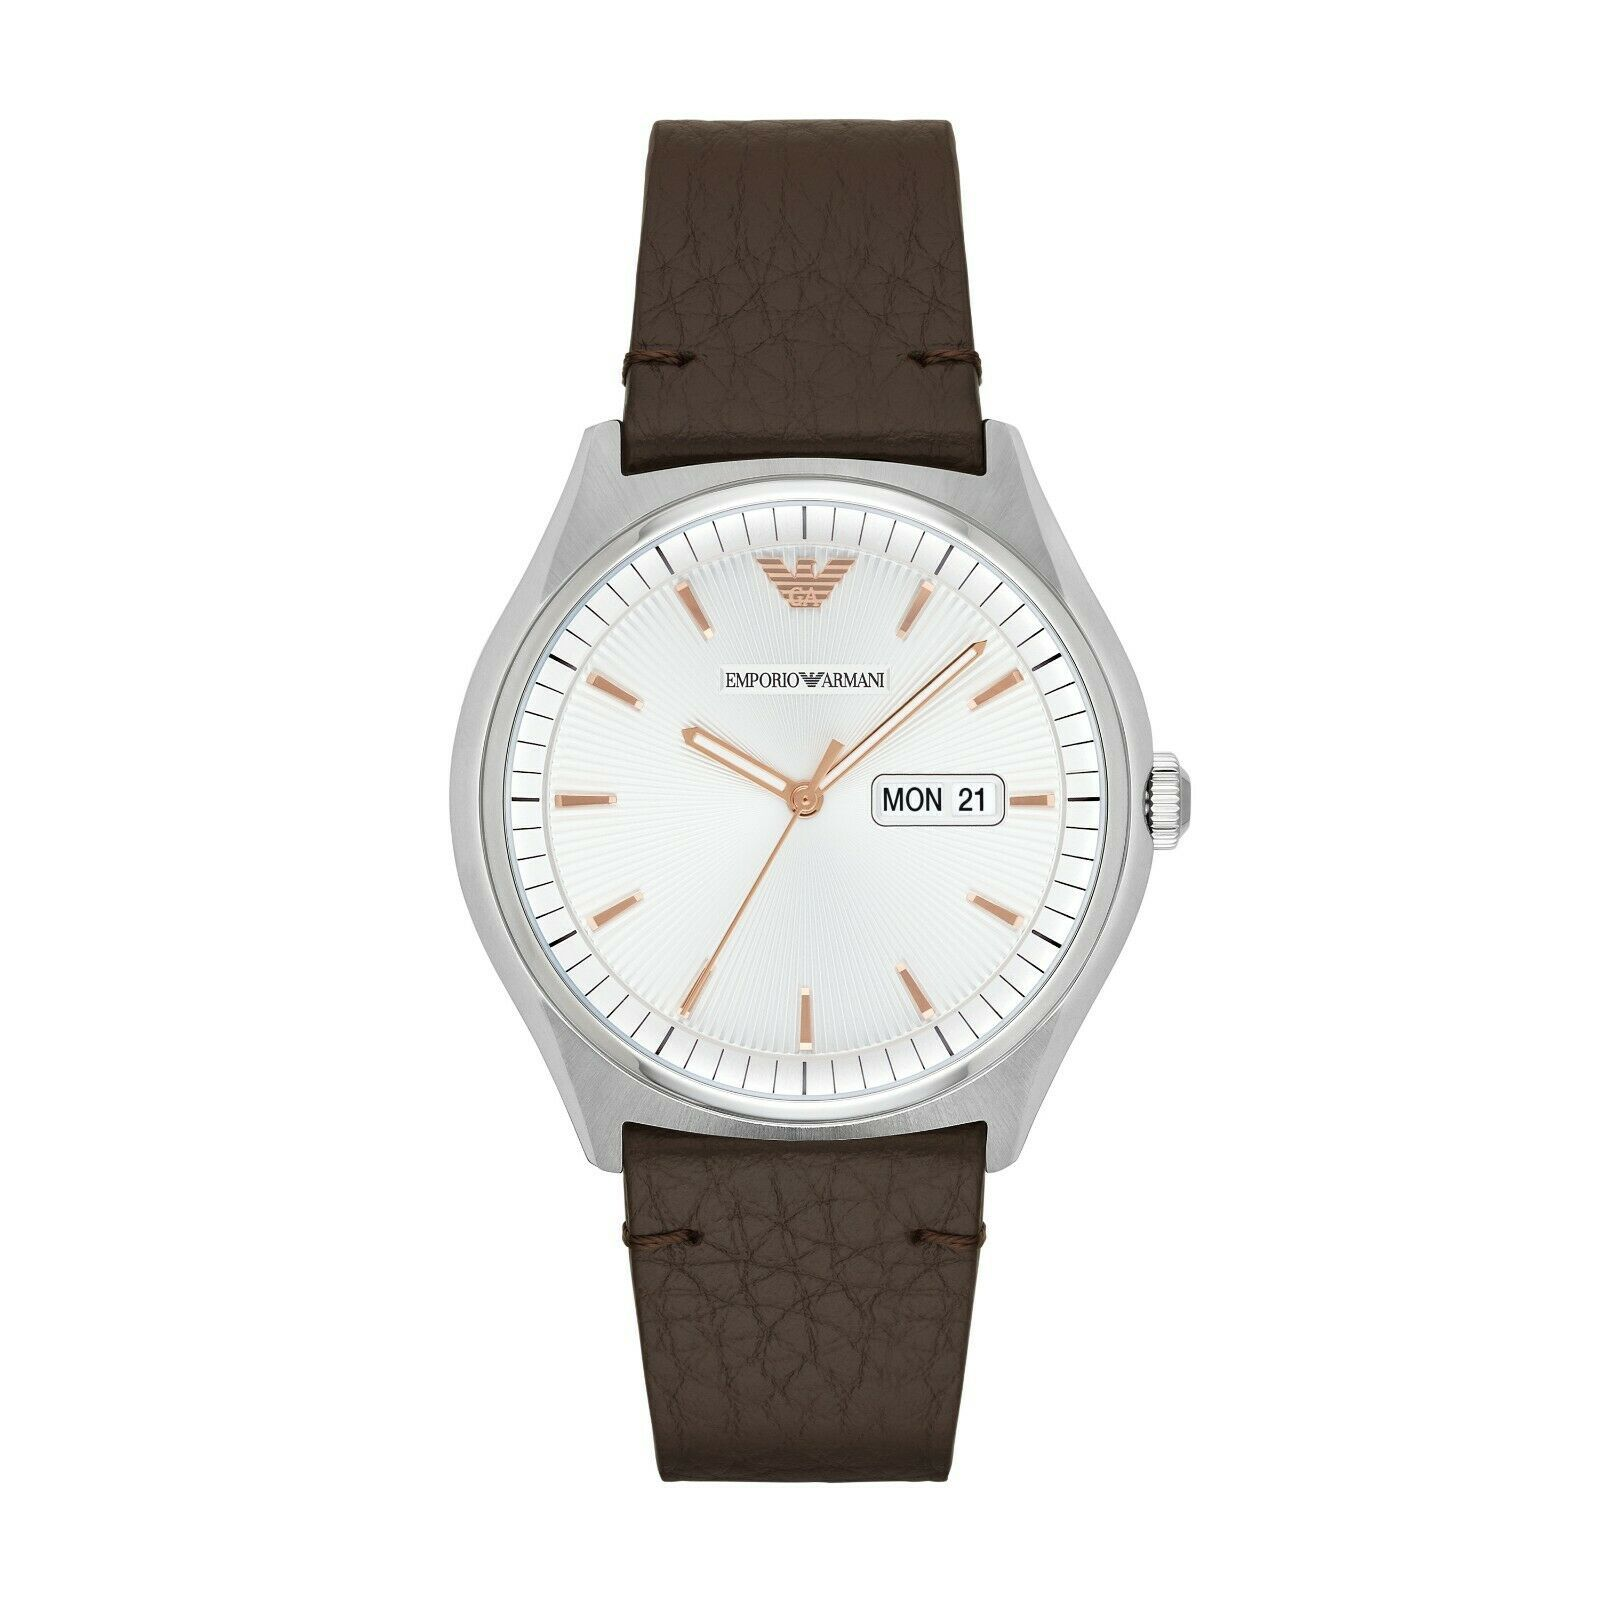 NWT Emporio Armani Classic Men's Watch AR1999 Dark Brown - £114.21 GBP